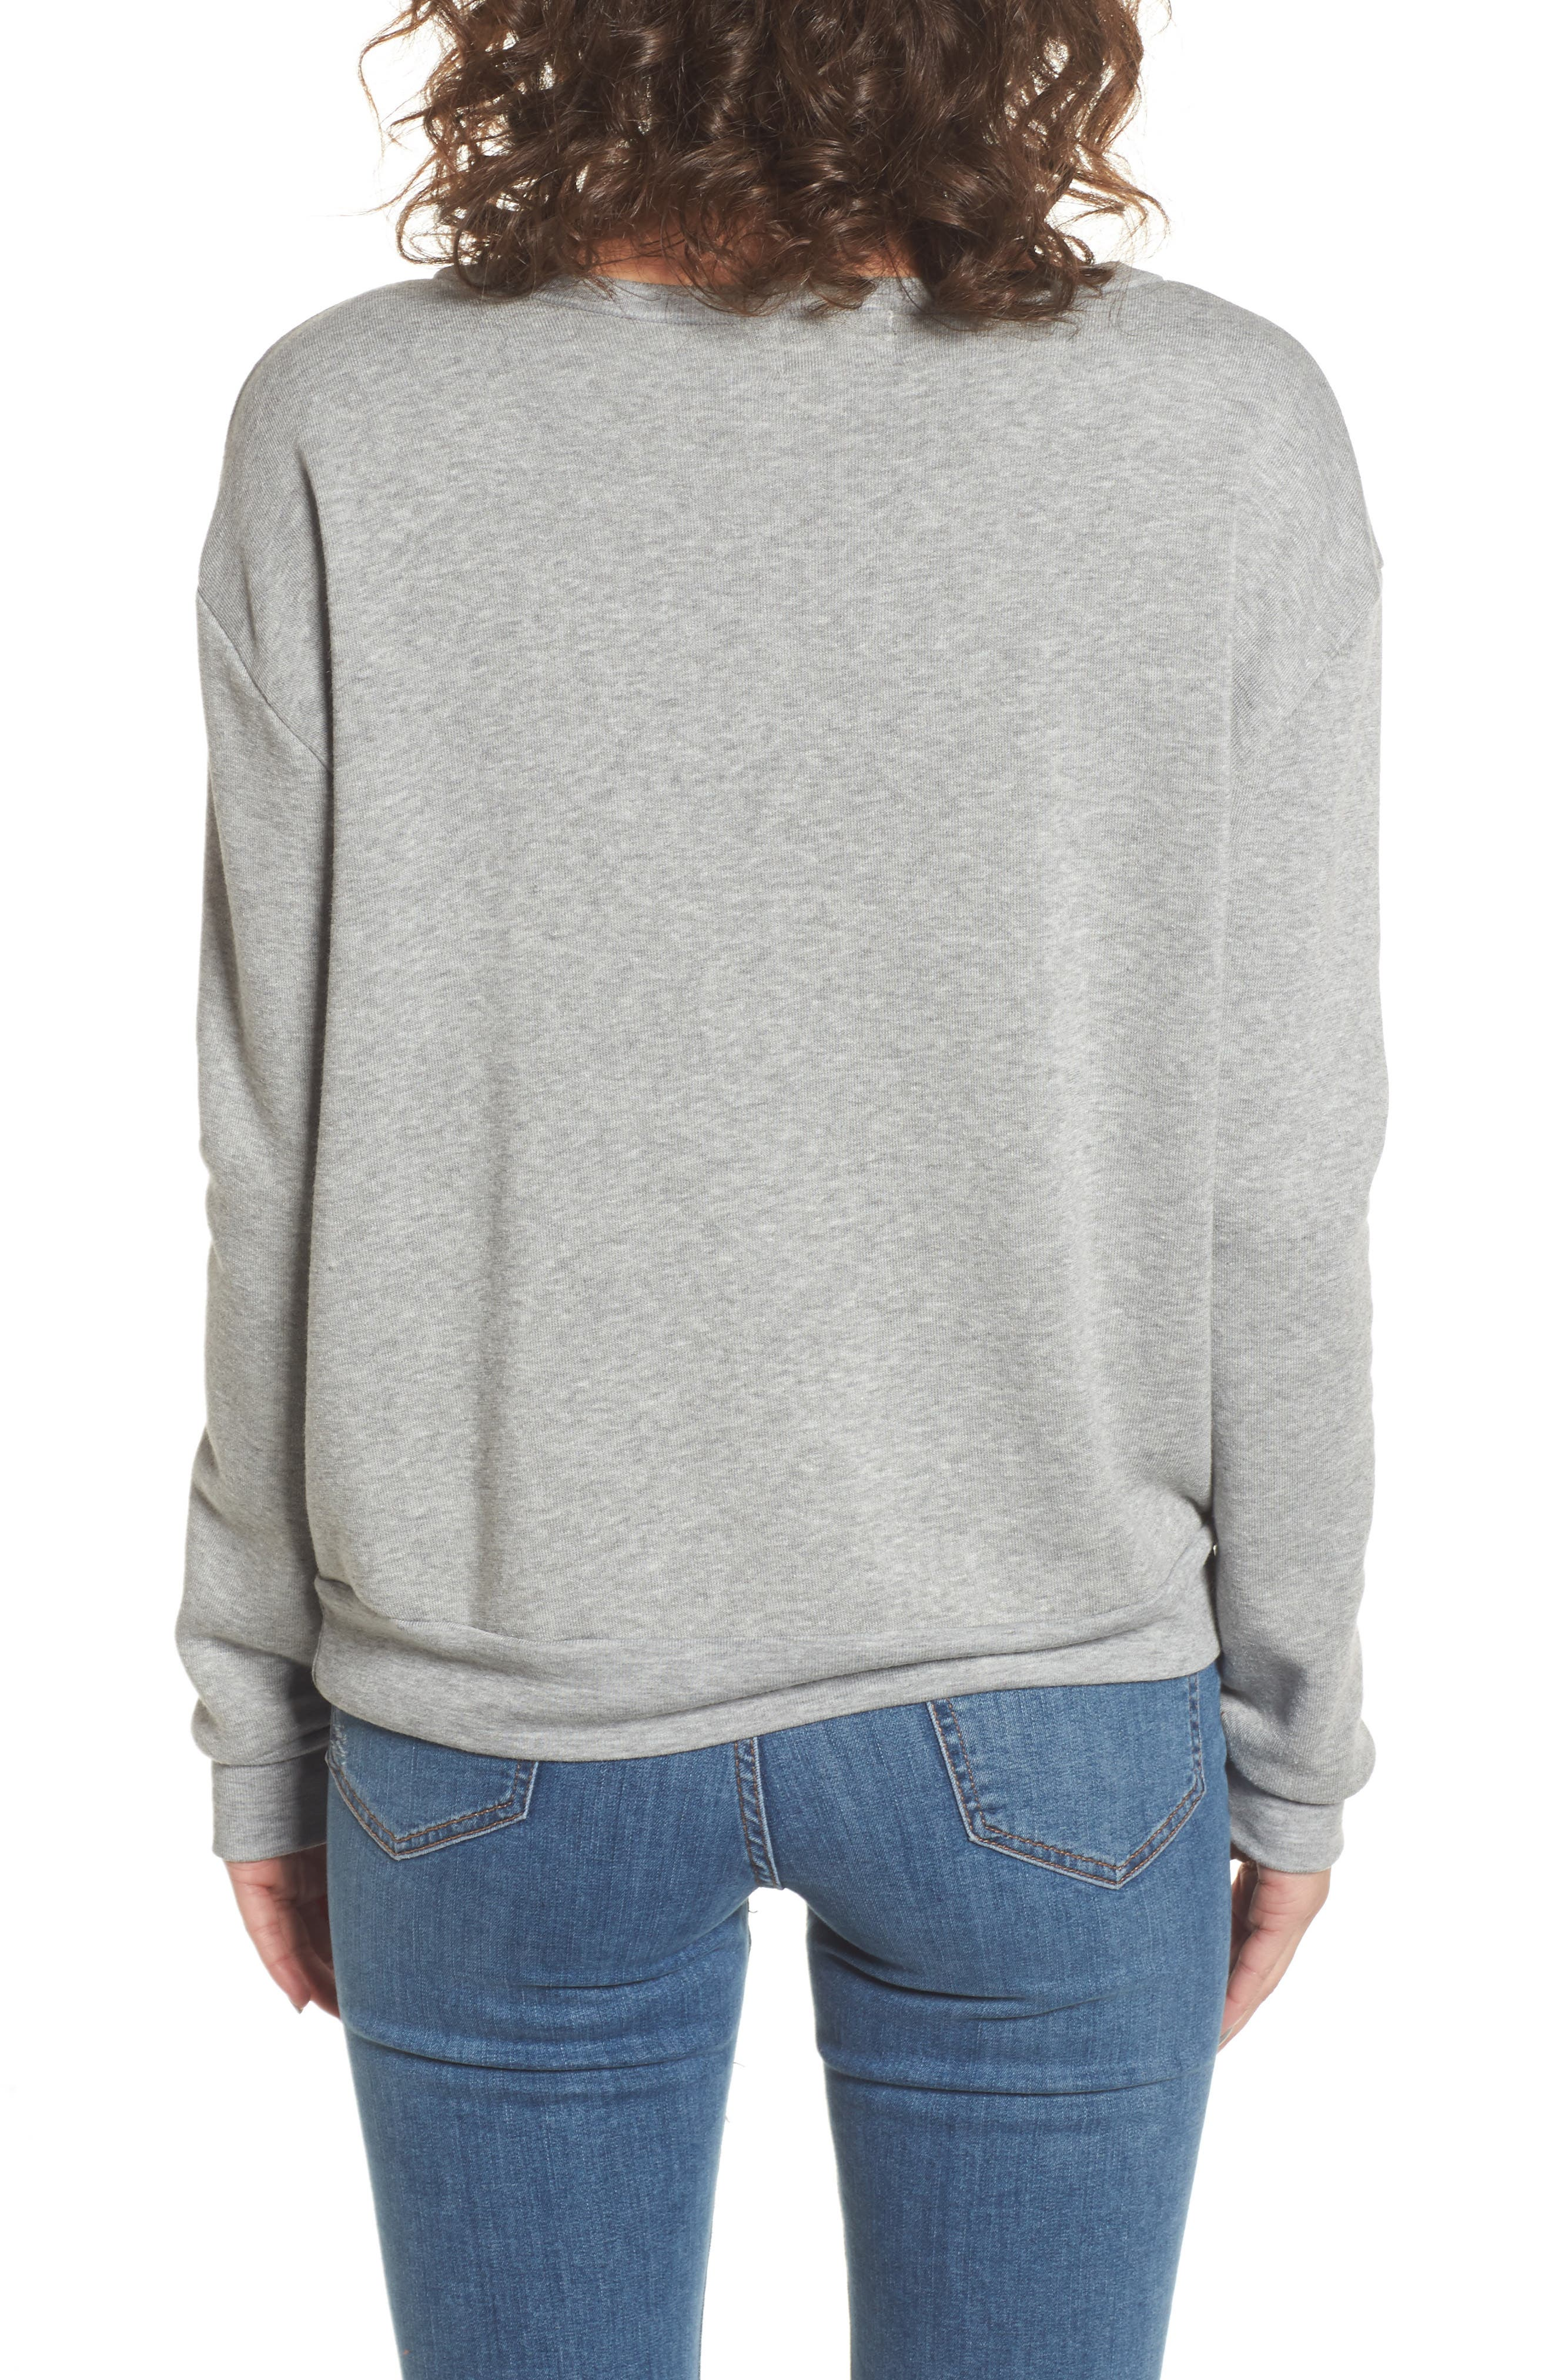 Let's Wine about It Sweatshirt,                             Alternate thumbnail 2, color,                             Heather Grey